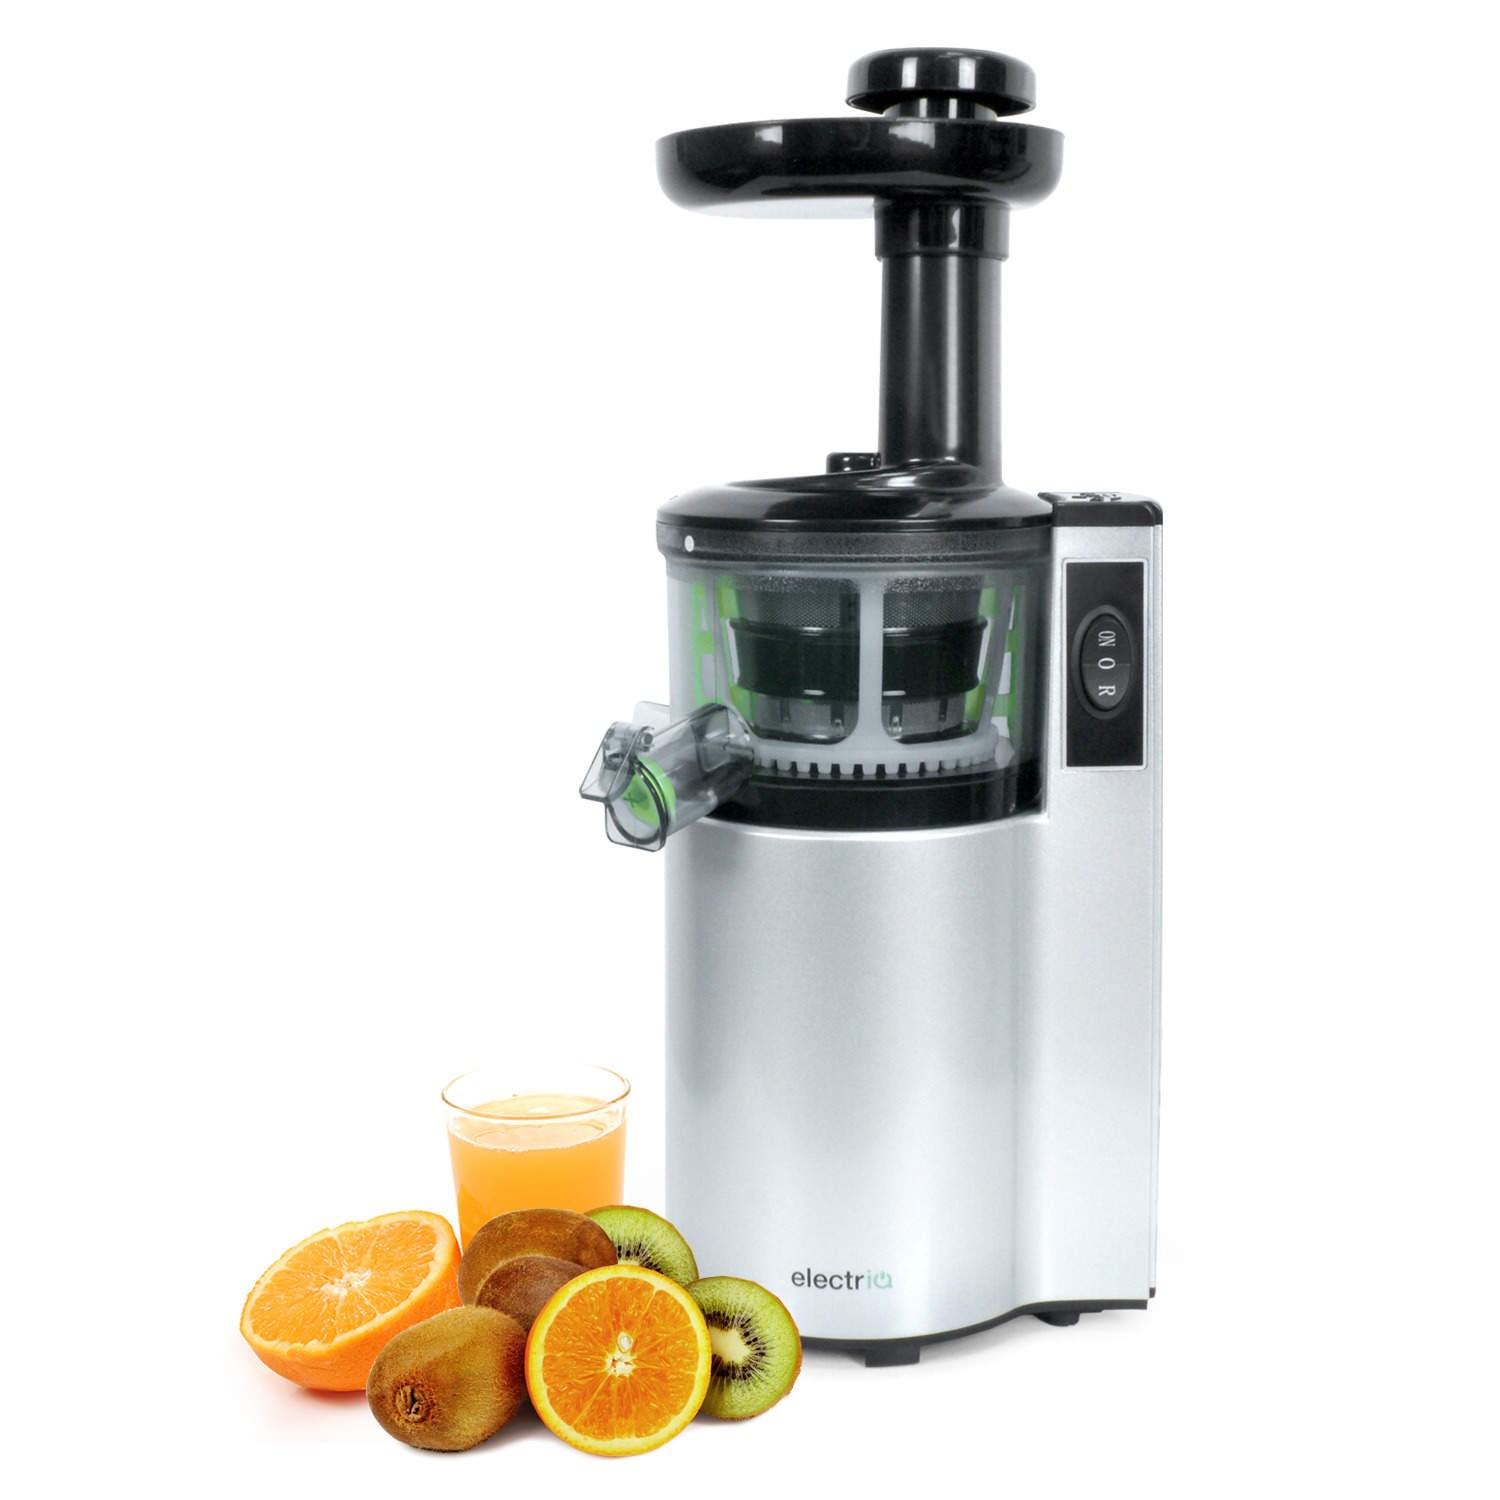 Slow Juicer Juice Recipe : ElectriQ vertical Slow Masticating Juicer Fruit vegetable Juice Extractor eBay